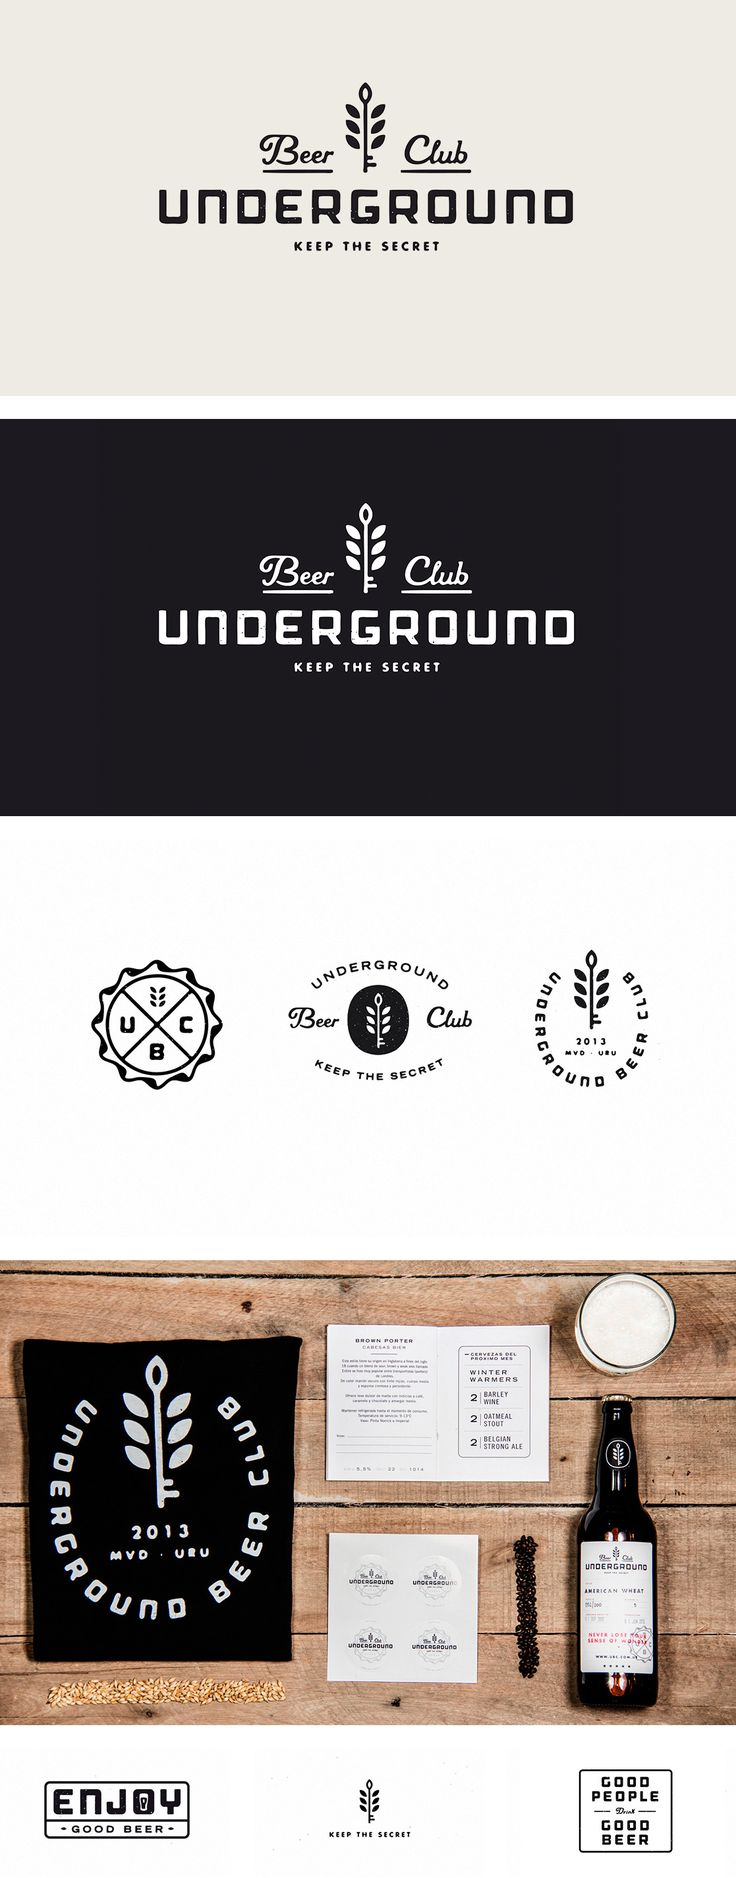 identity / underground beer club--like wheat/key and the typeface for underground